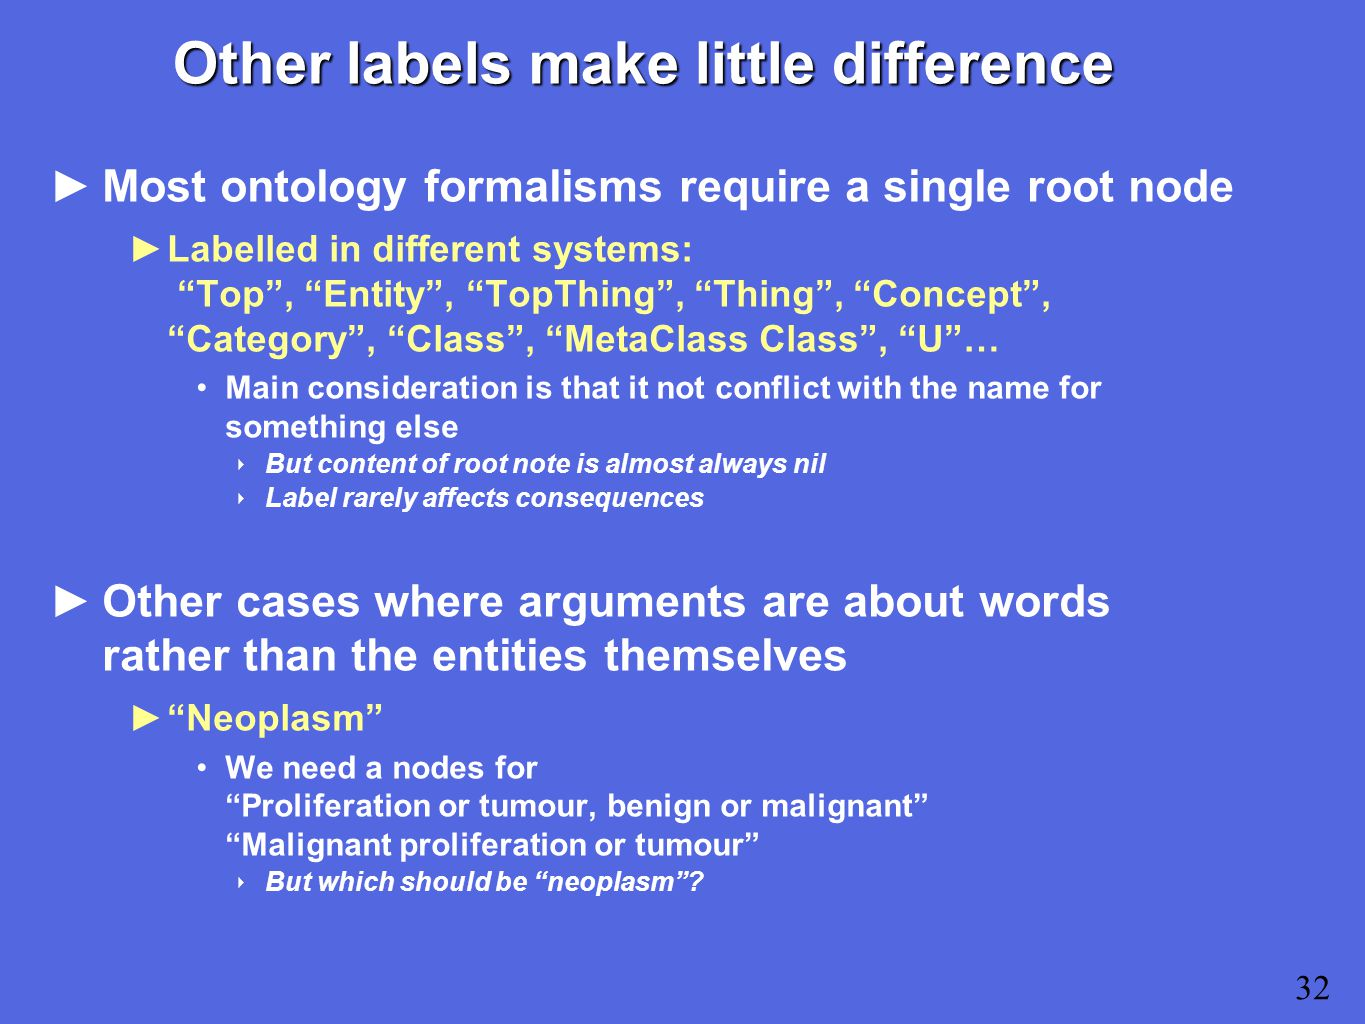 Other labels make little difference ►Most ontology formalisms require a single root node ►Labelled in different systems: Top , Entity , TopThing , Thing , Concept , Category , Class , MetaClass Class , U … Main consideration is that it not conflict with the name for something else ‣ But content of root note is almost always nil ‣ Label rarely affects consequences ►Other cases where arguments are about words rather than the entities themselves ► Neoplasm We need a nodes for Proliferation or tumour, benign or malignant Malignant proliferation or tumour ‣ But which should be neoplasm .